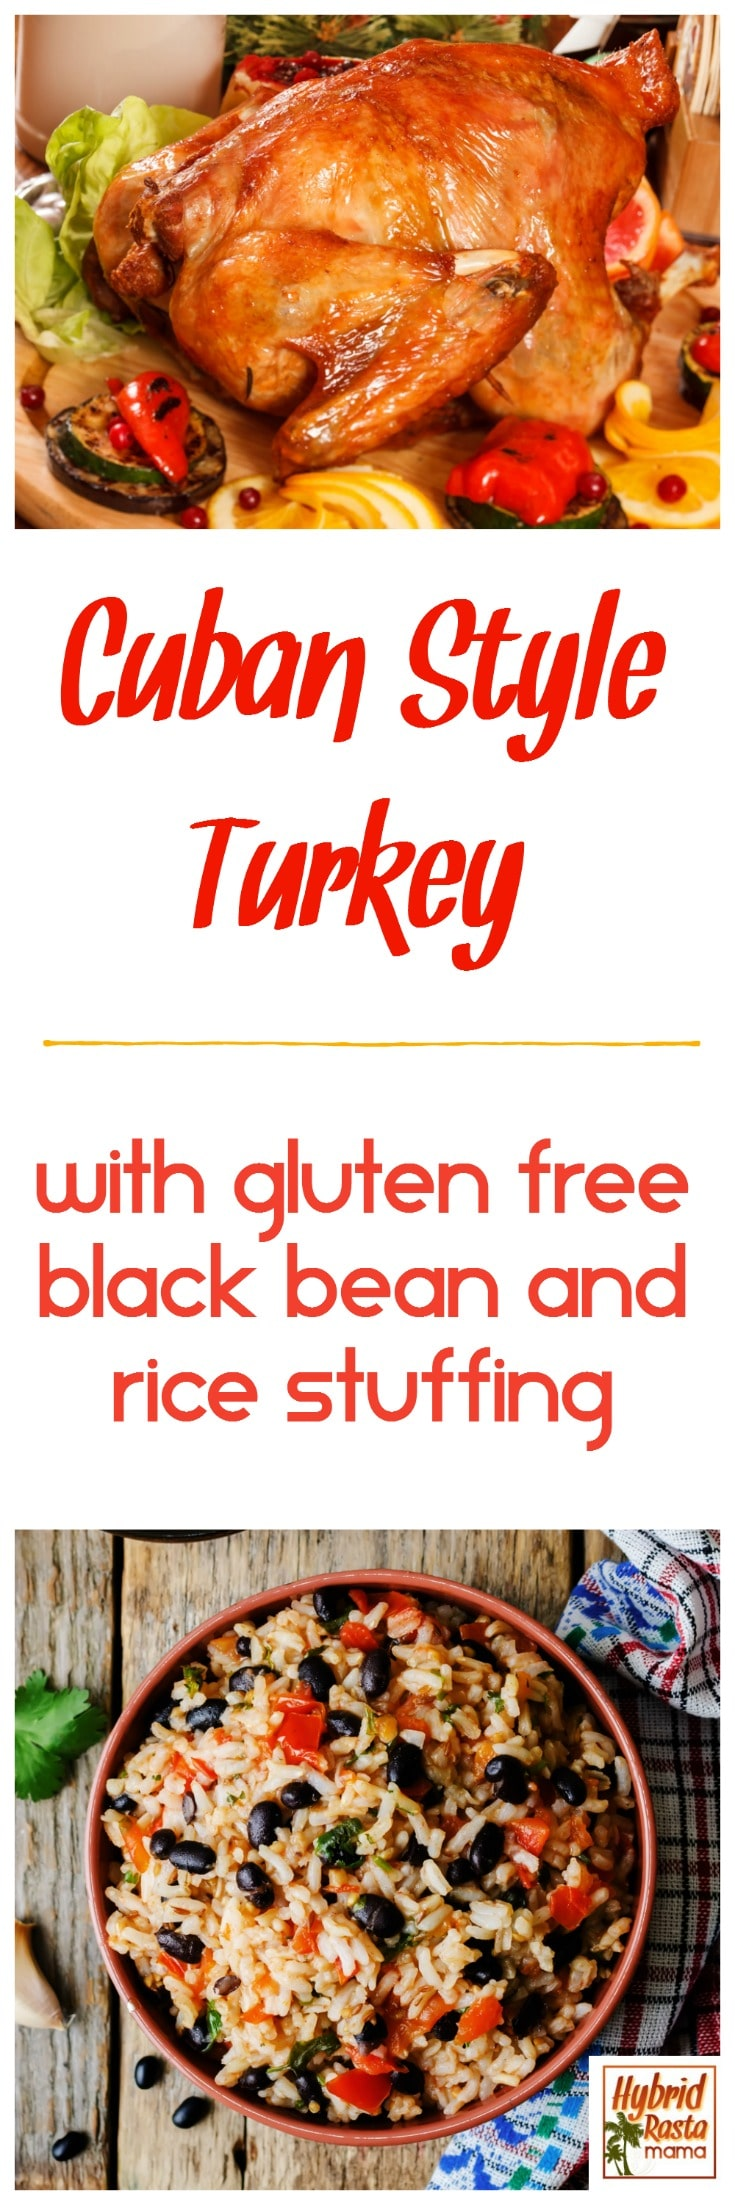 In my family, holiday meals are about creative cuisine. This gluten free, Cuban style turkey & black bean and rice stuffing recipe is drool worthy. Your guests will be stunned. From HybridRastaMama.com